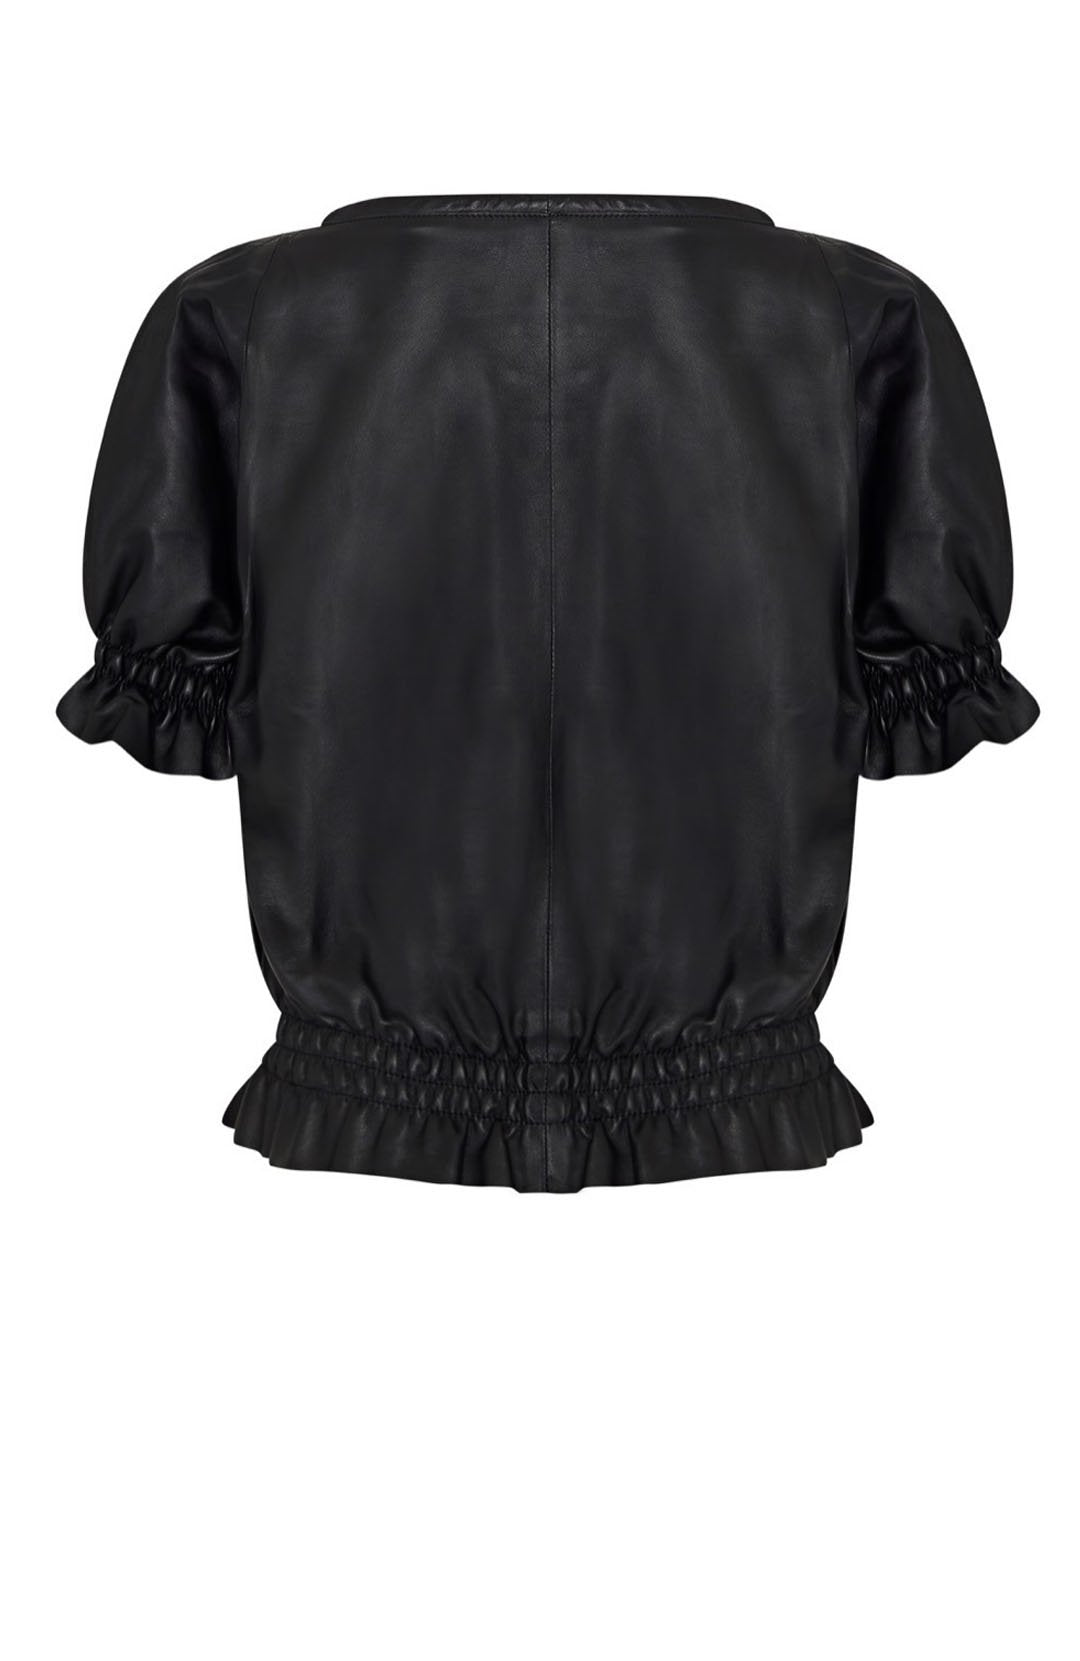 LEATHER GYPSY TOP